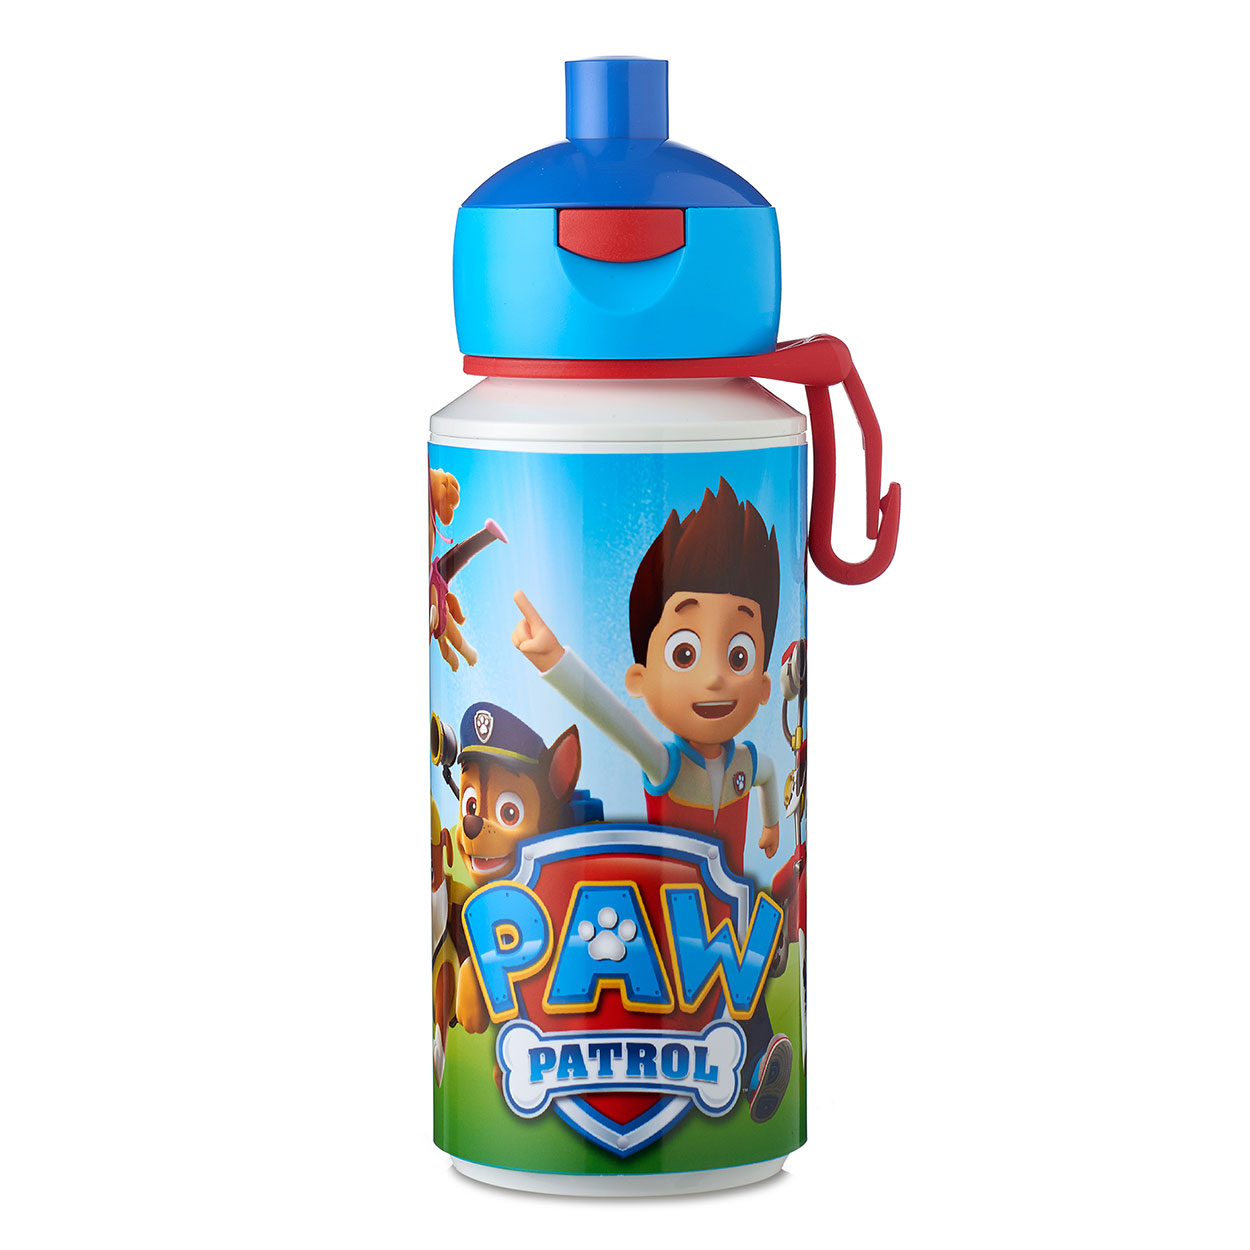 Mepal Campus Drinkfles Pop-up - Paw Patrol